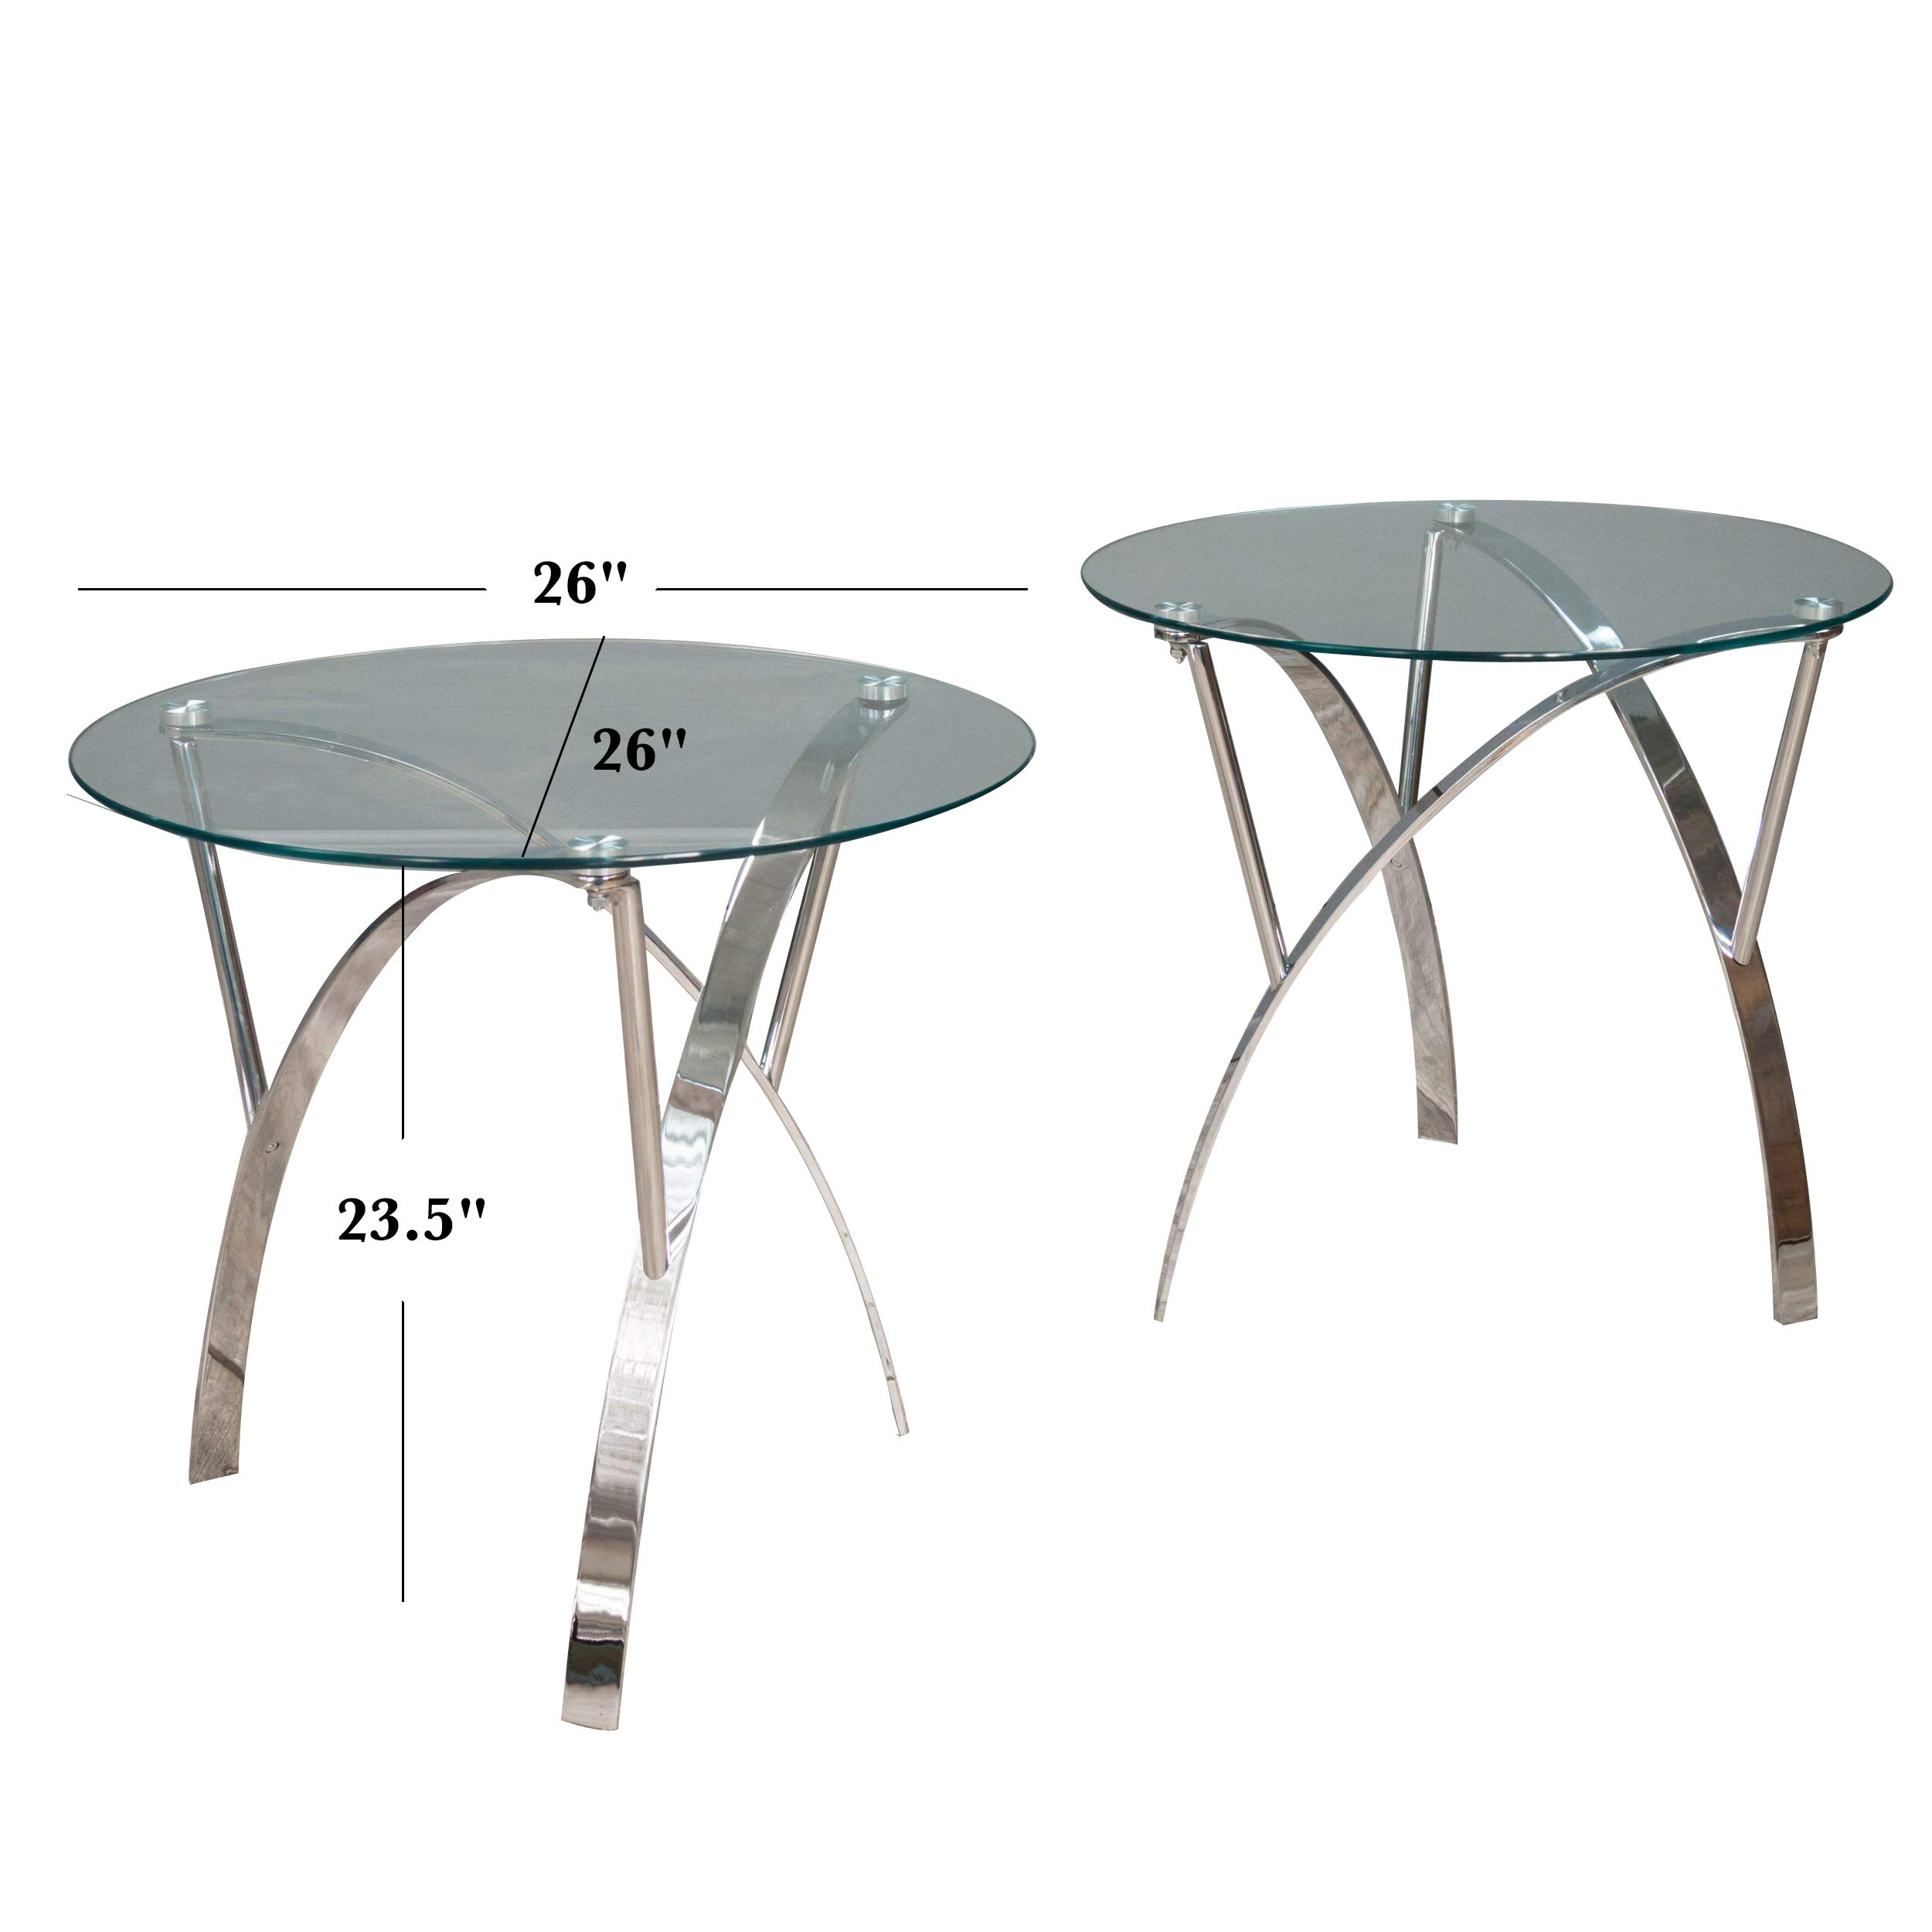 Christopher Knight Home 295401 Davina Tempered Glass Round End Tables w/Chrome Legs (Set of 2), Clear by Christopher Knight Home